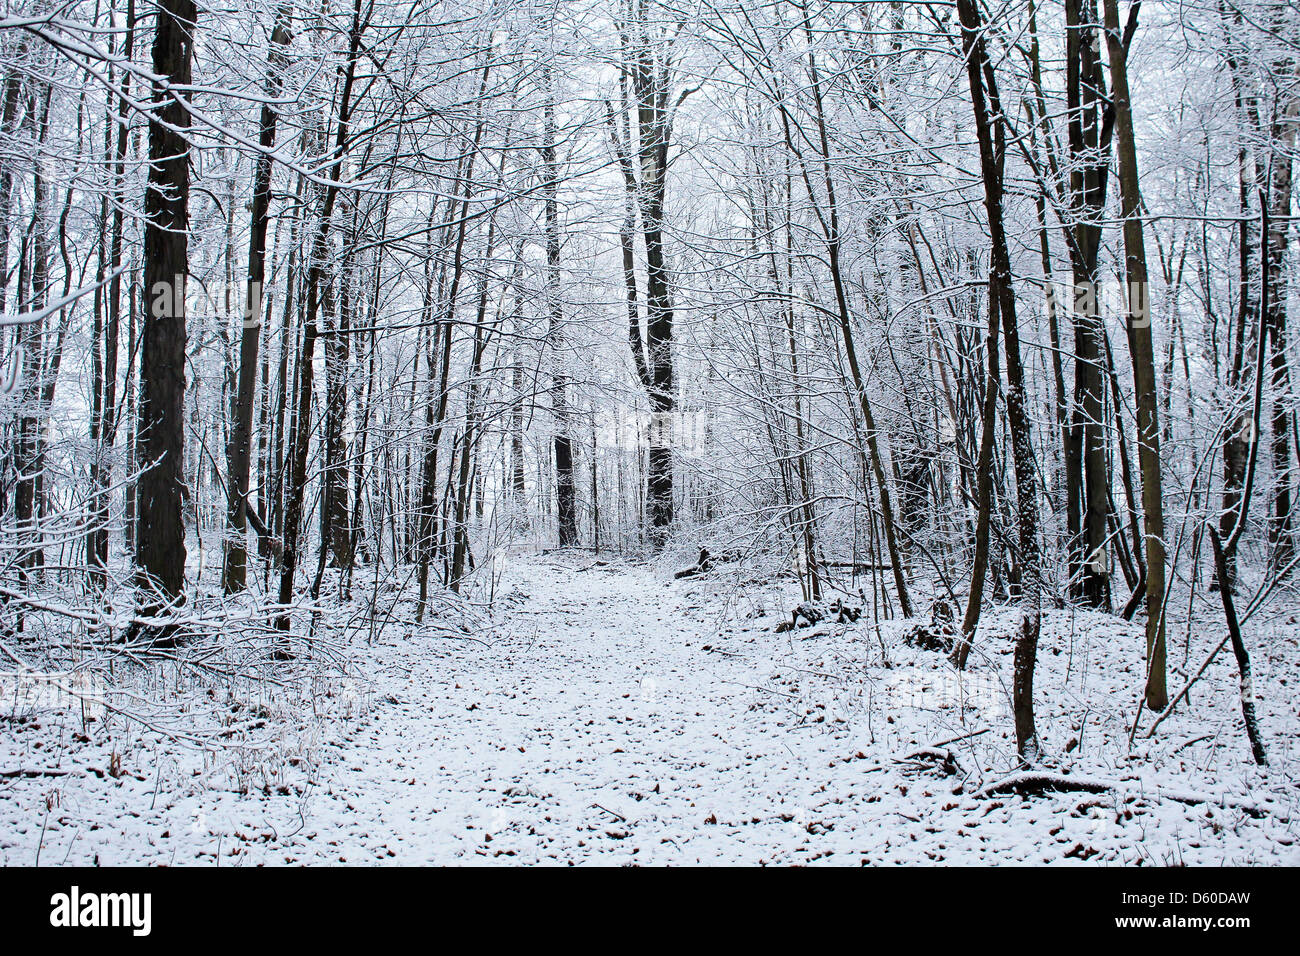 A snowy path through a beautiful winter woods. - Stock Image